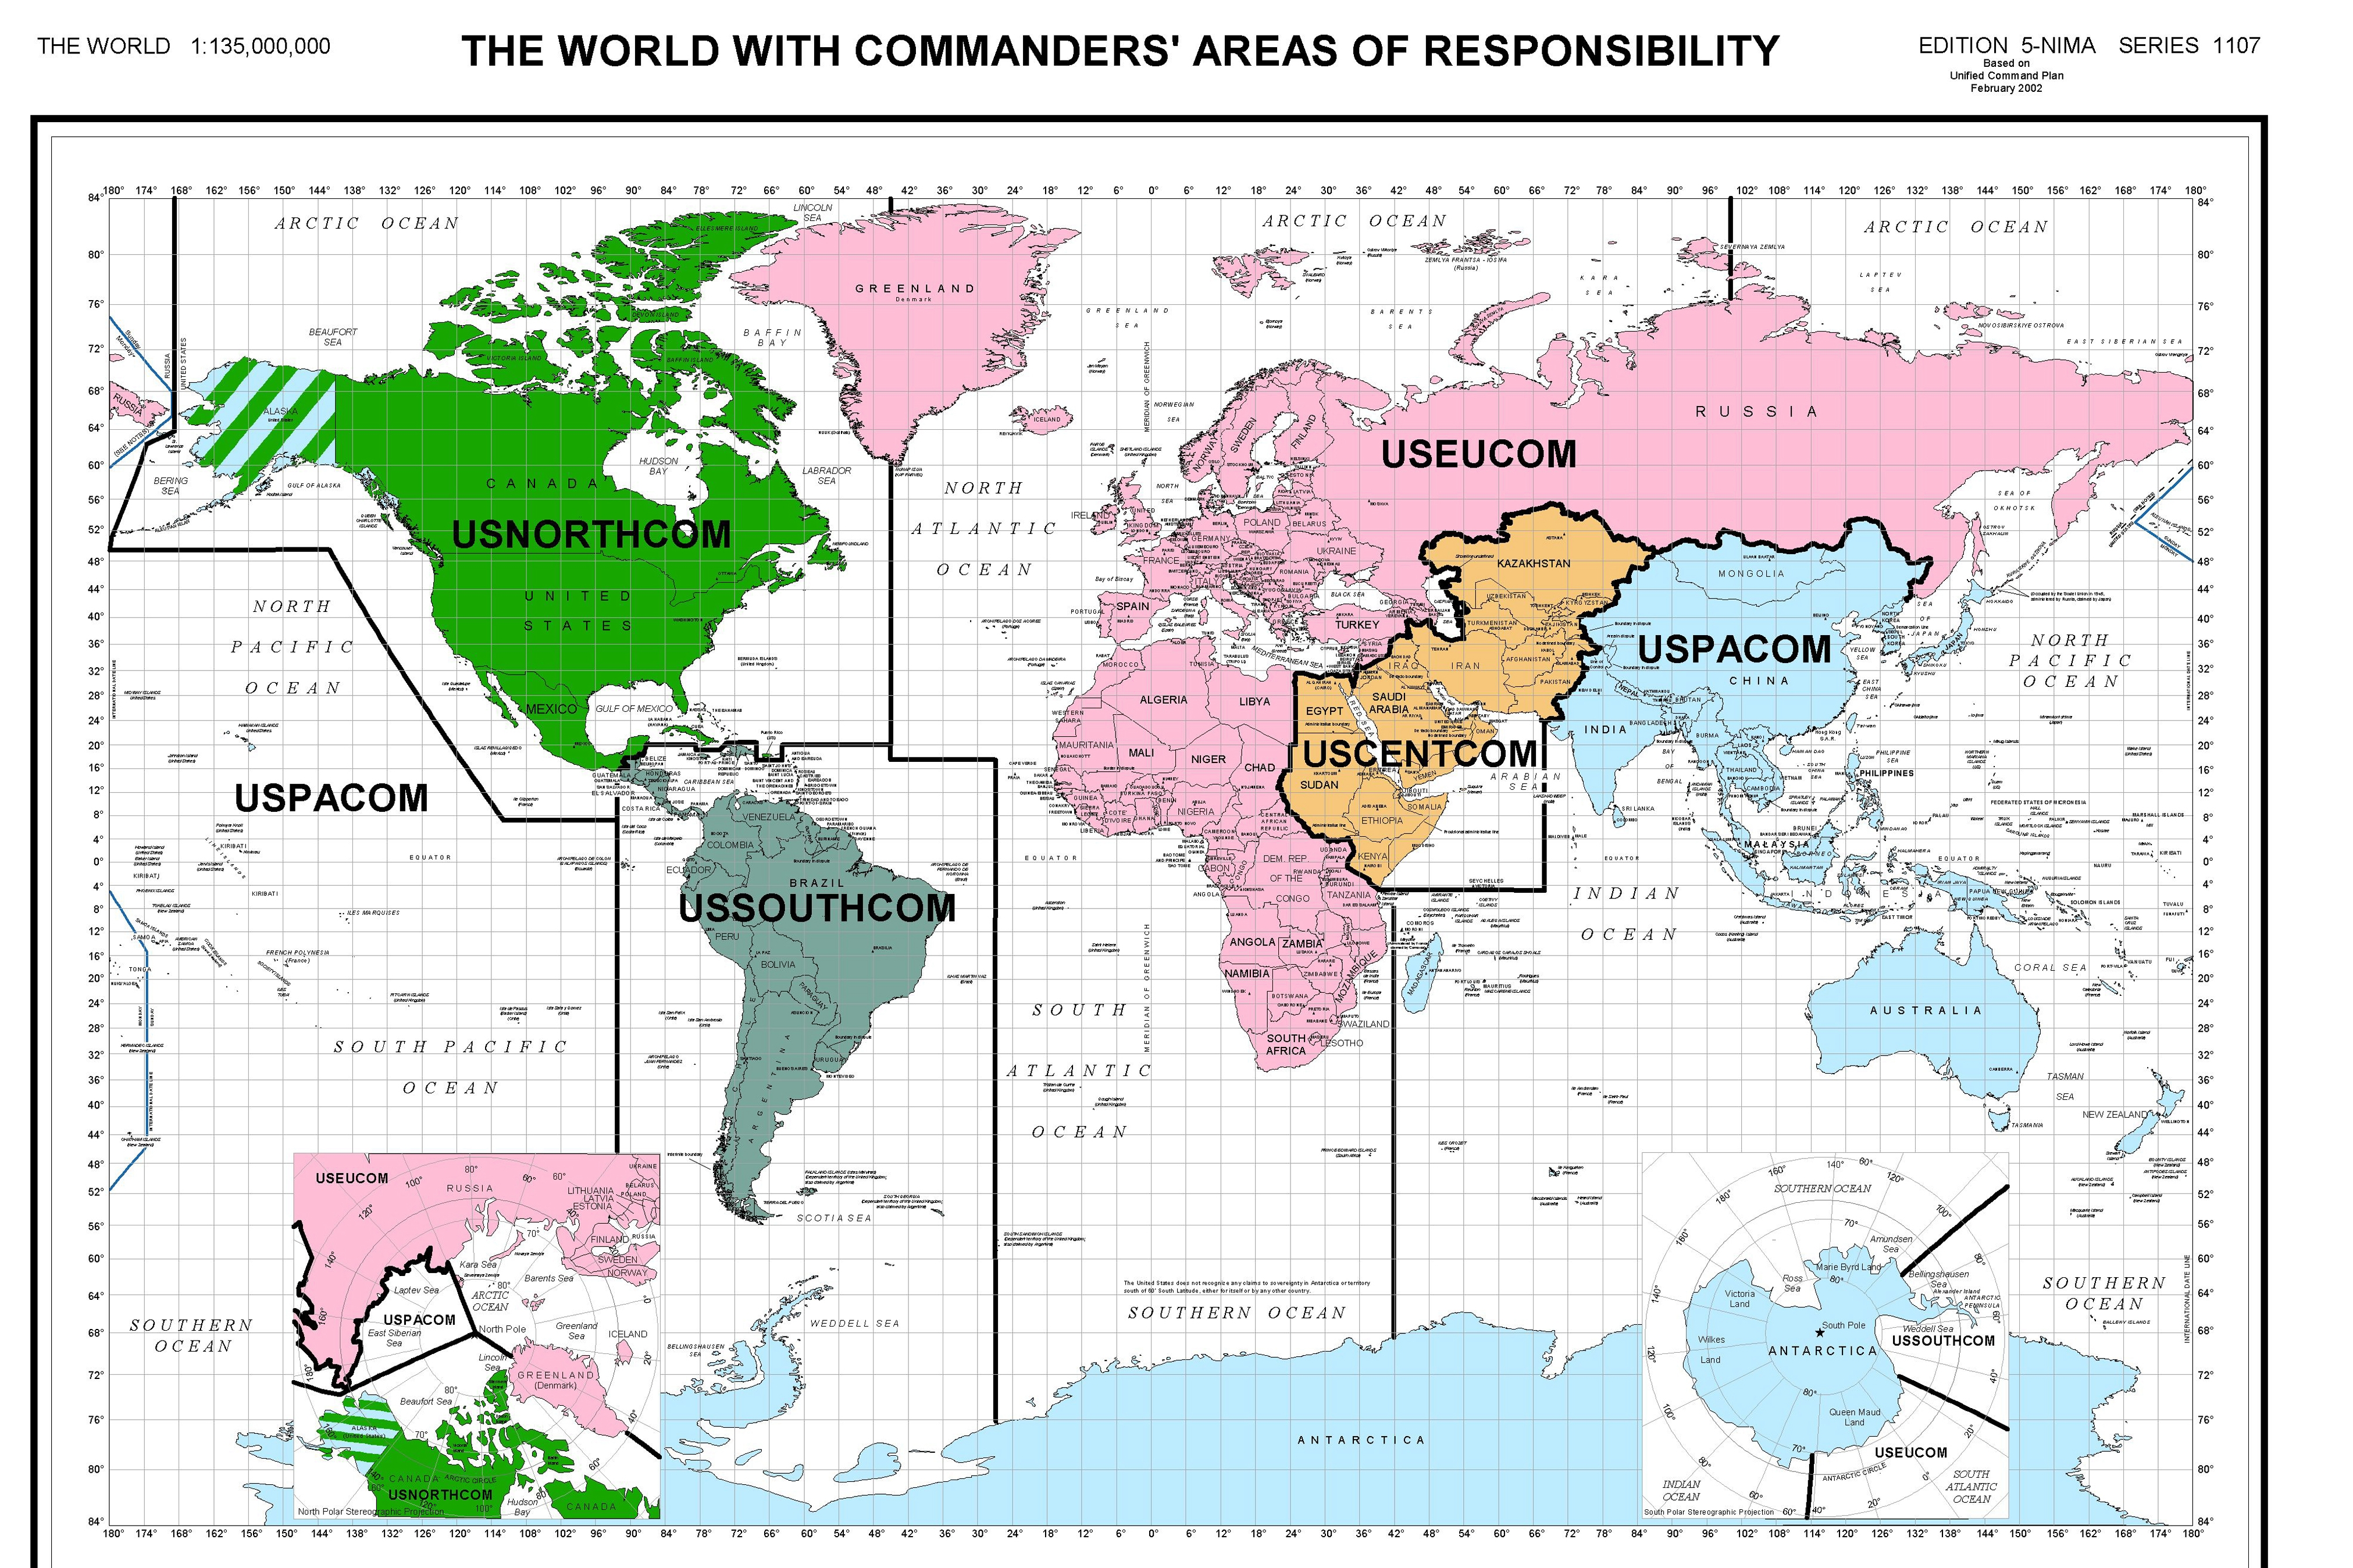 Fileunified command map sg wikimedia commons fileunified command map sg gumiabroncs Images